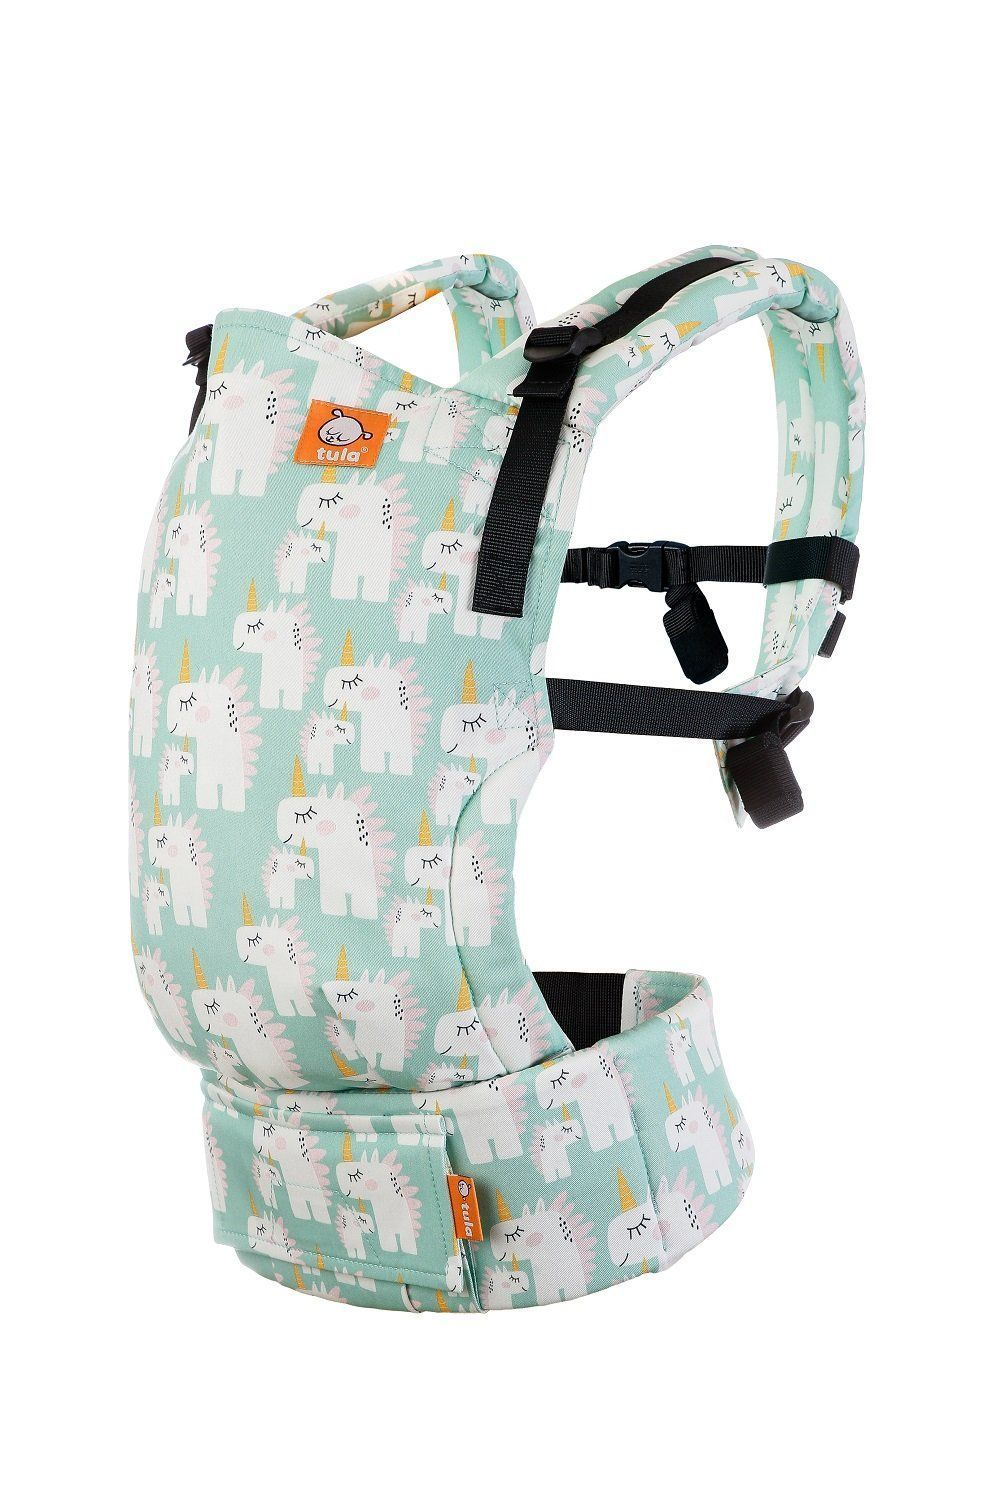 4252f033806 Unisaurus - Tula Free-to-Grow Baby Carrier - Baby Tula. Meet sweet little  buddies from a not-quite prehistoric place. Unisaurus is a unique take on  our ...